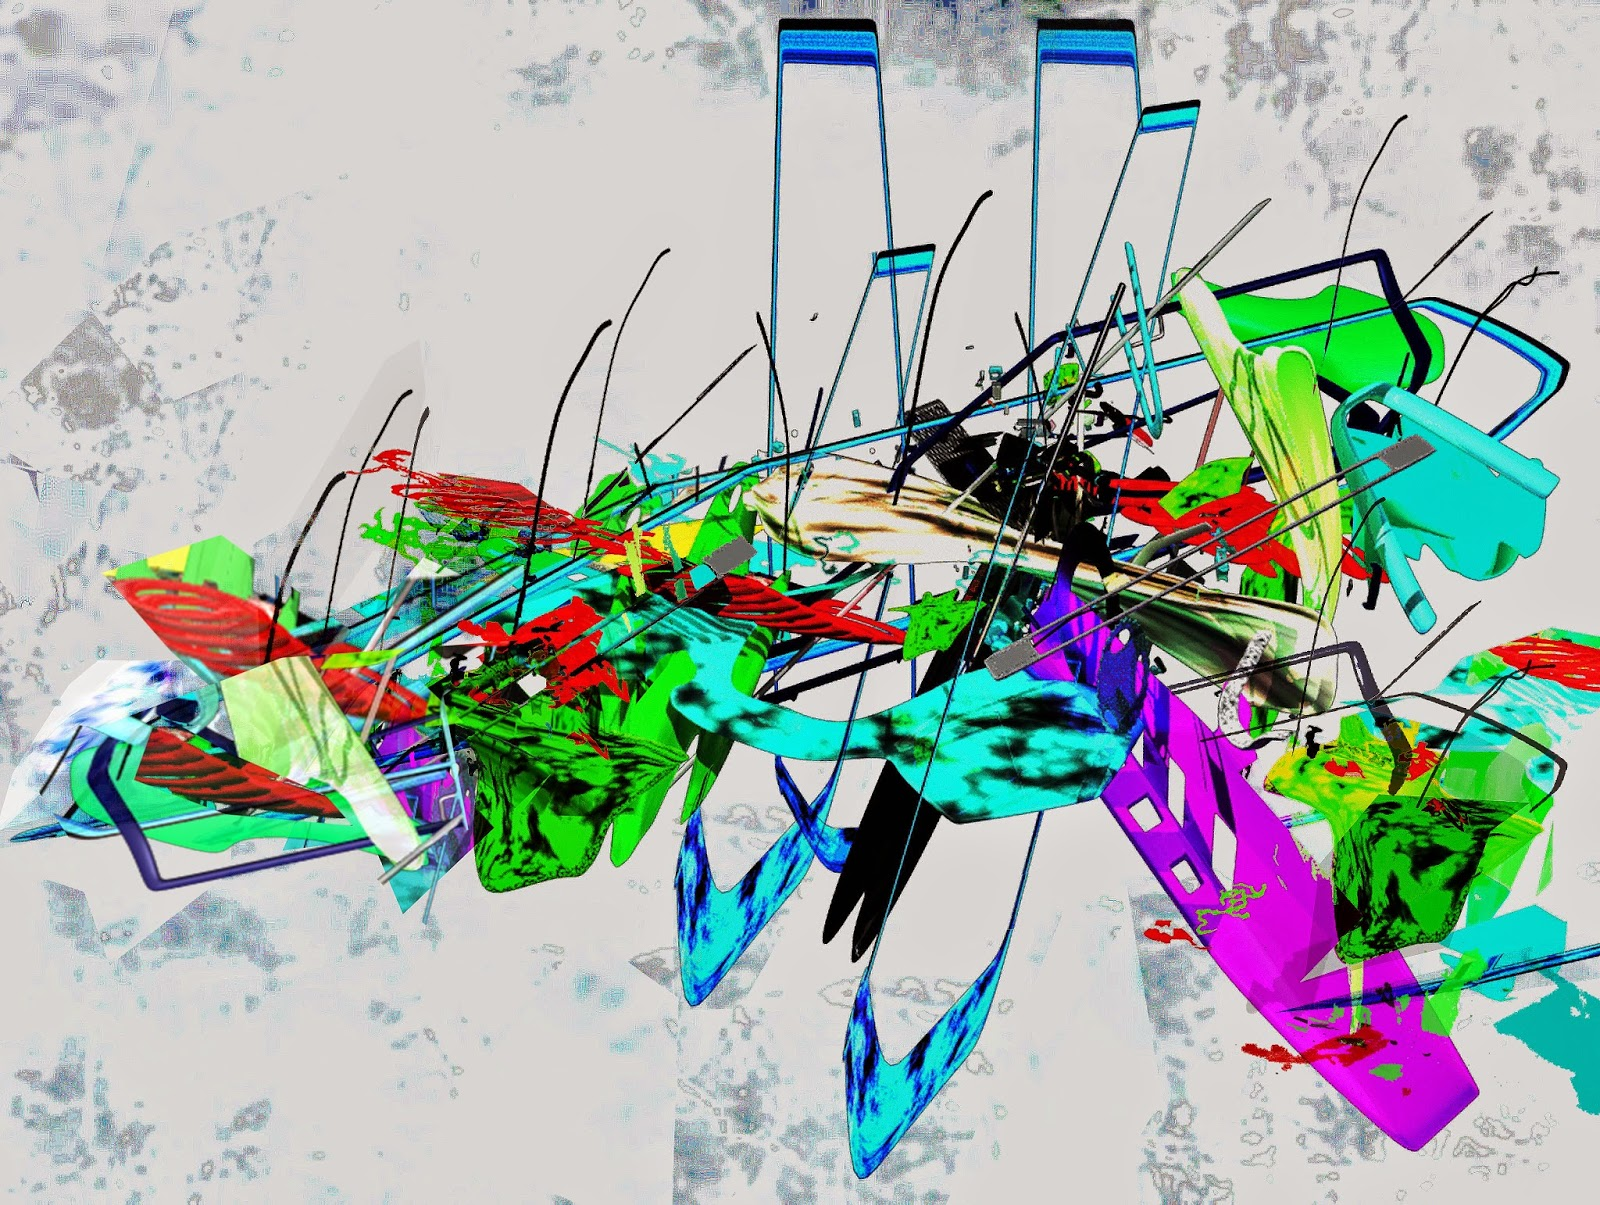 Ryota Matsumoto, Distant Plaine Mixed Media, 2013, 42cmx59cm, acrilico, software grafici, algoritmici e video.